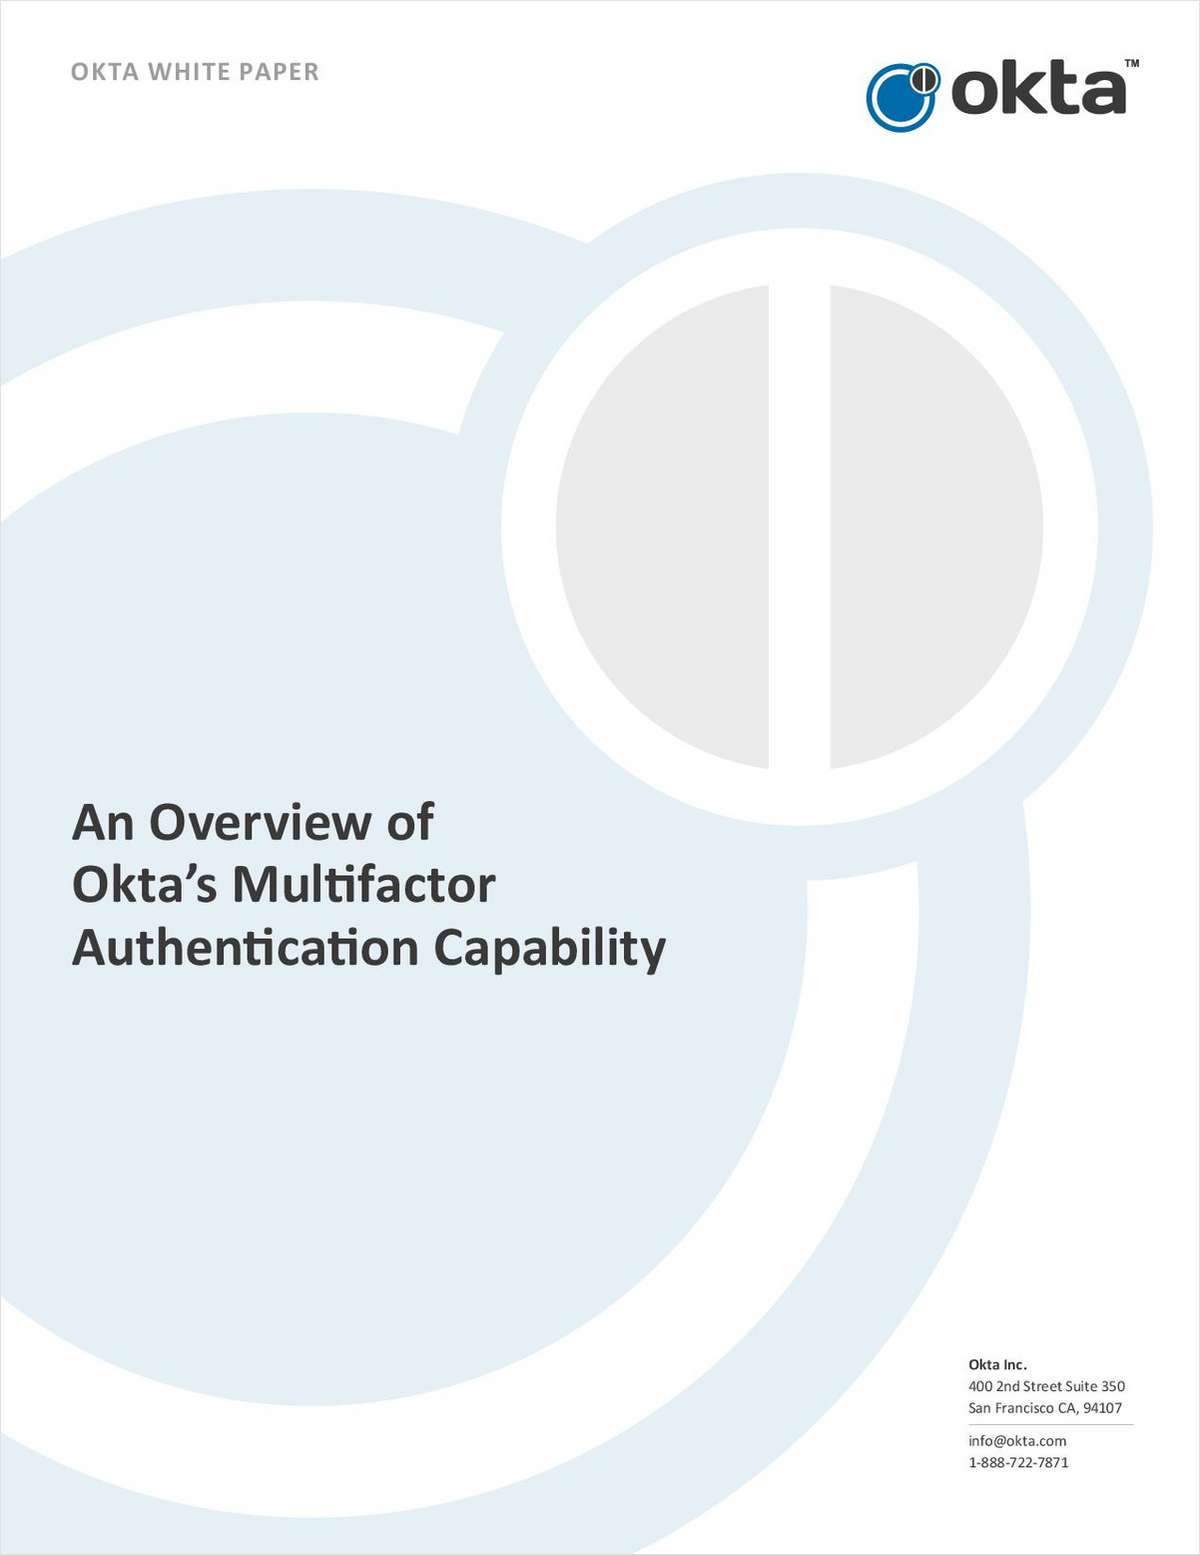 An Overview of Okta's Multifactor Authentication Capability